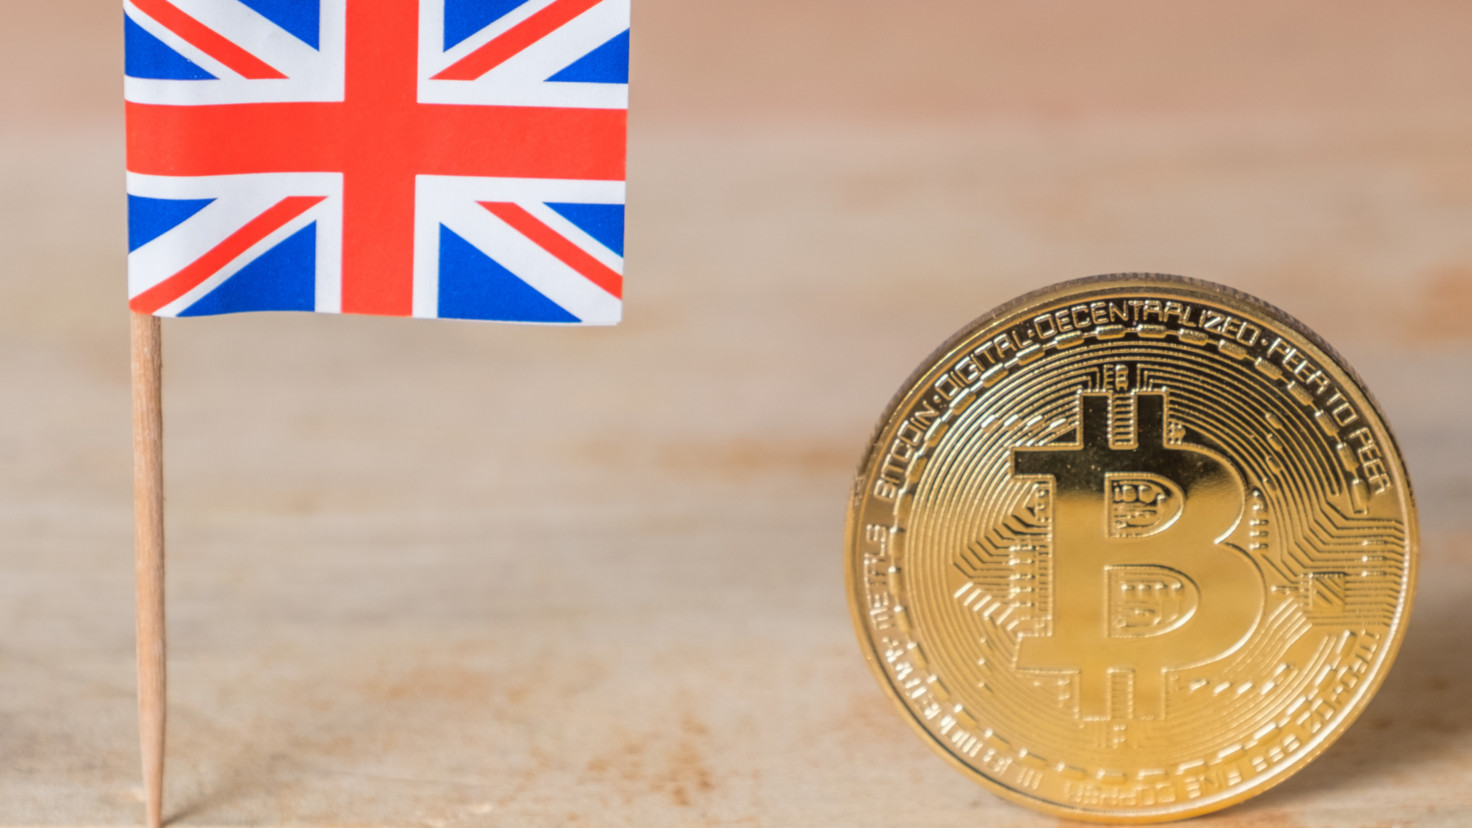 Cryptocurrency regulation in the UK: is Bitcoin legal? | Currency.com